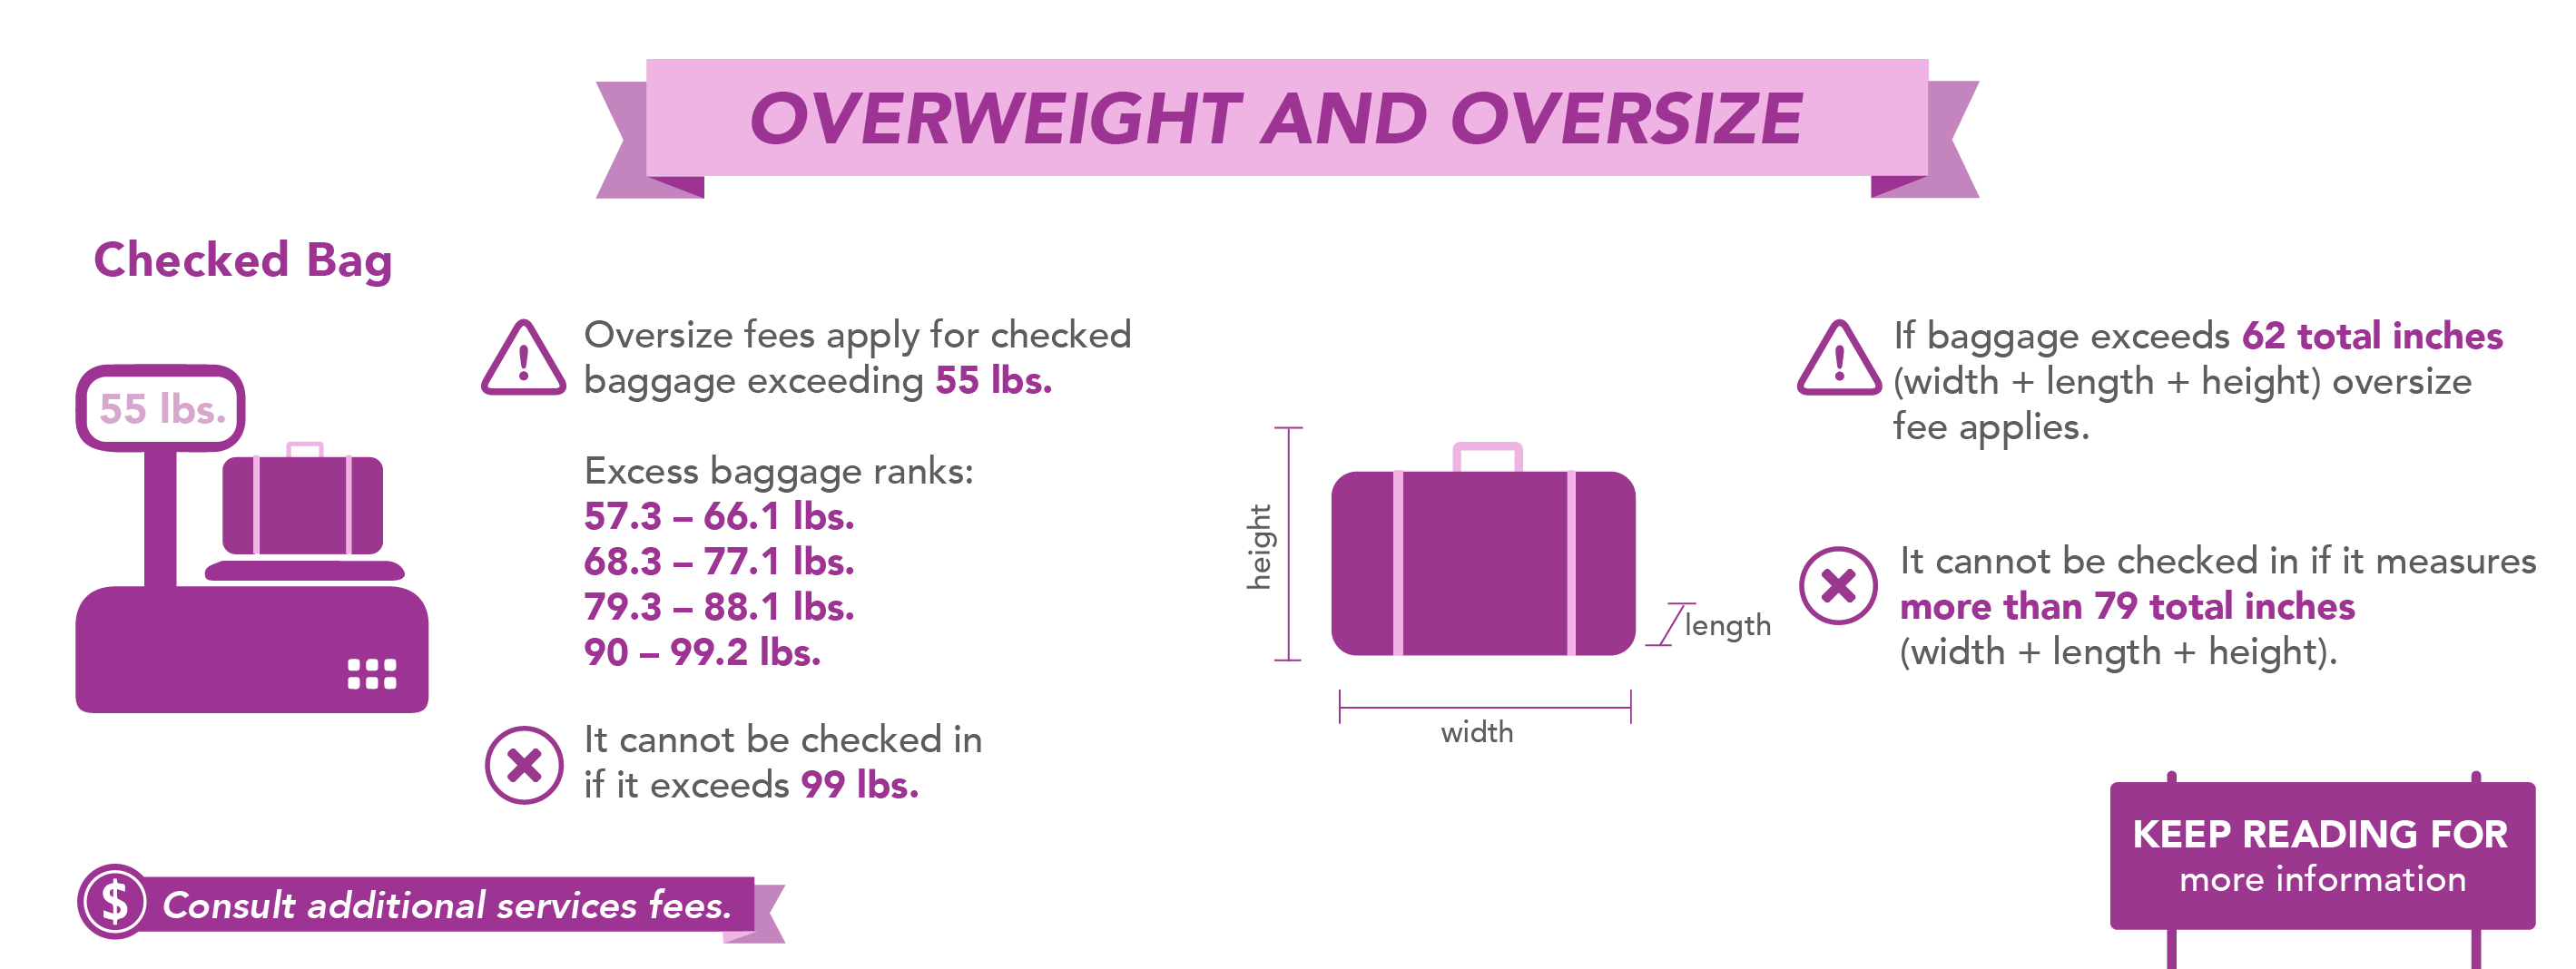 Volaris® Oversized and excess baggage